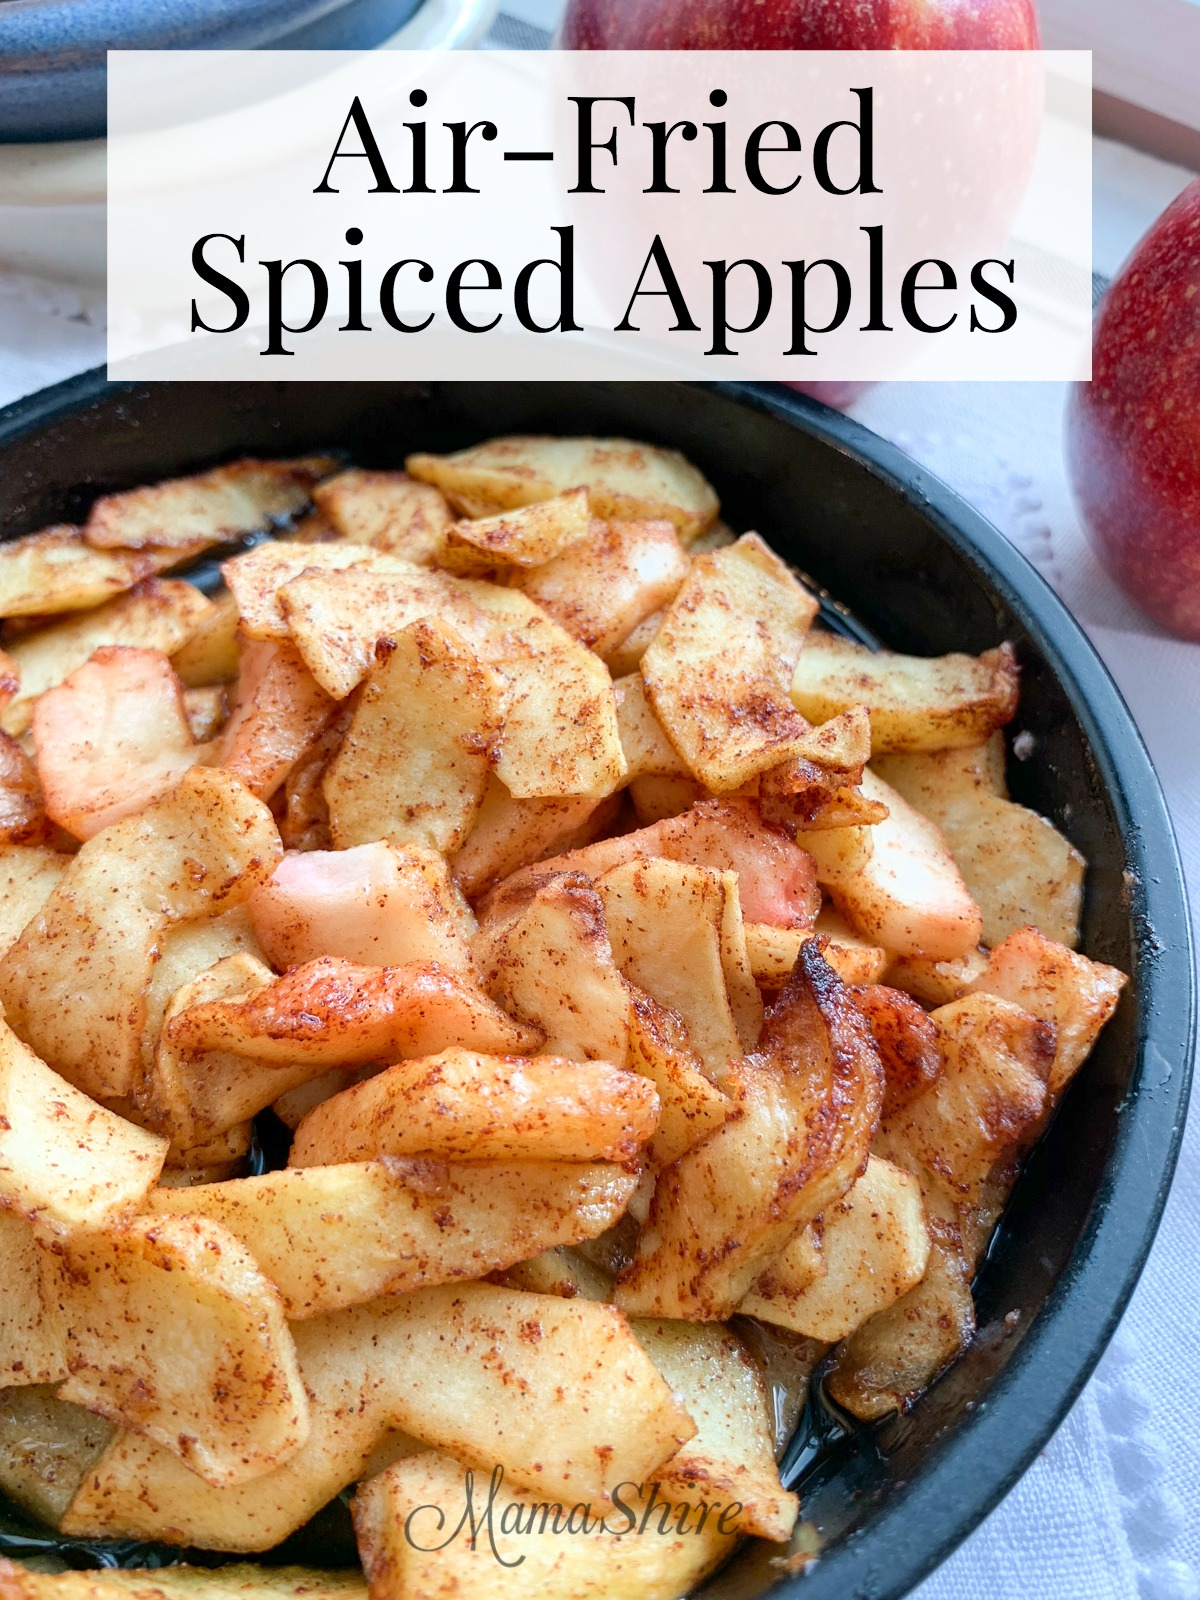 Easy to make Air-fried Spiced Apples